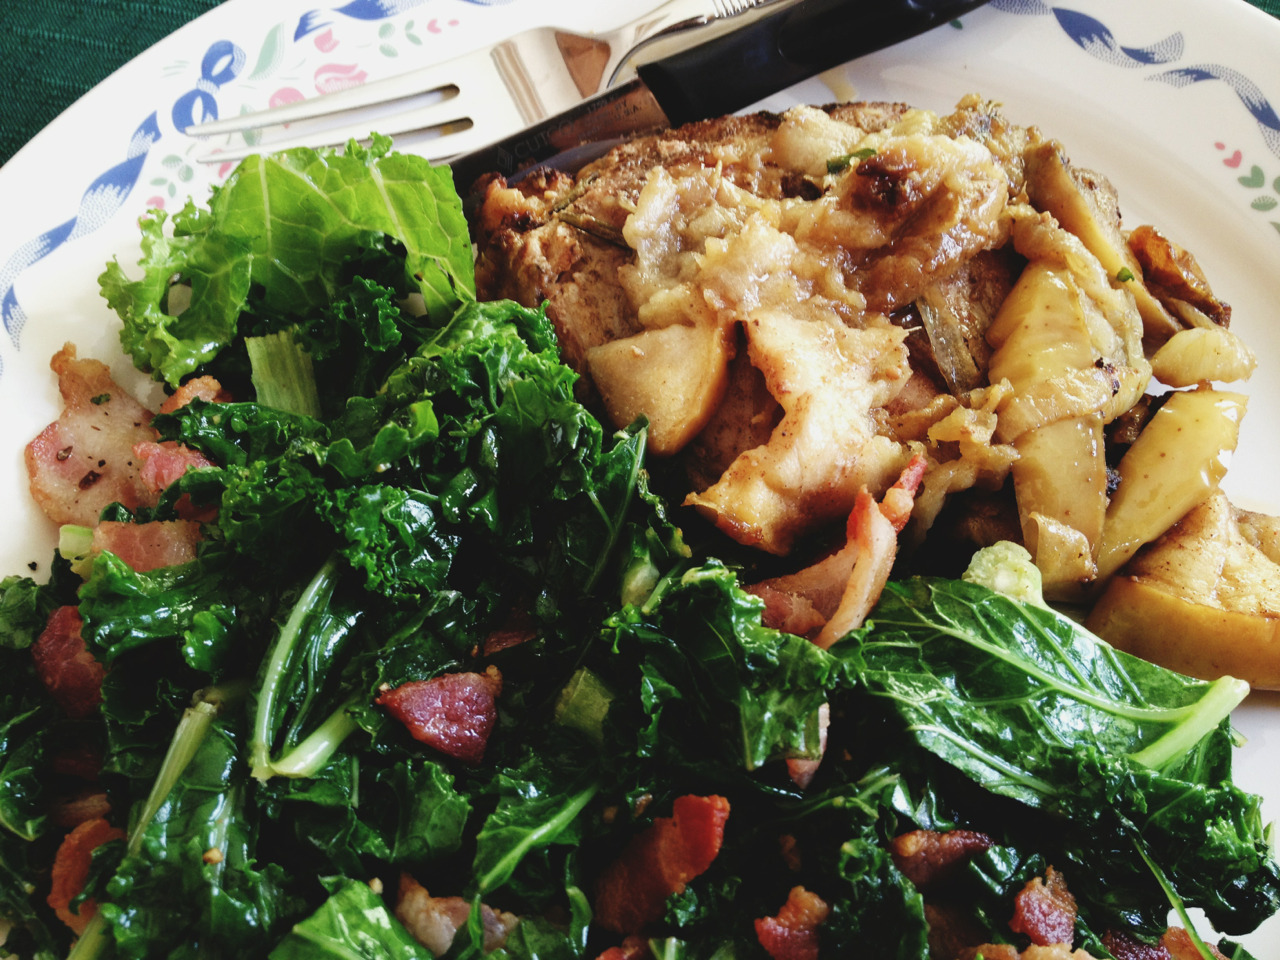 warm kale salad with leftover rosemary mustard pork chop + caramelized apple and onion